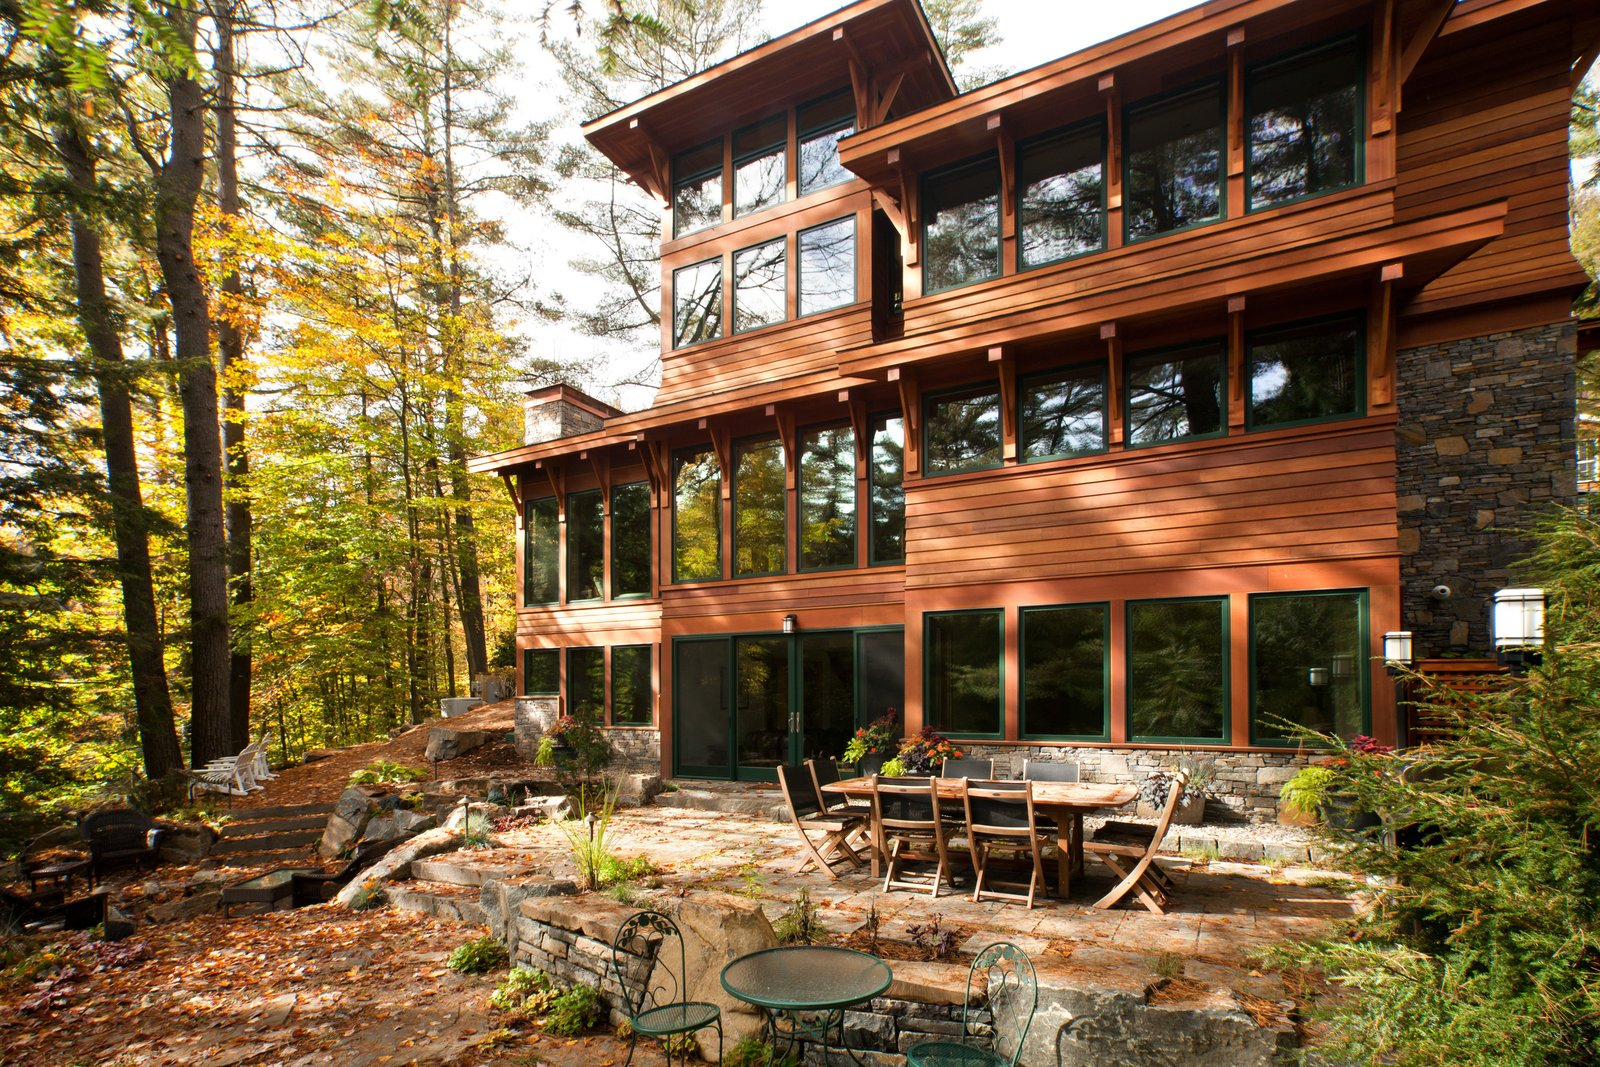 Exterior of house, Lake Luzerne, NY  Fourth Lake Summer House by Phinney Design Group